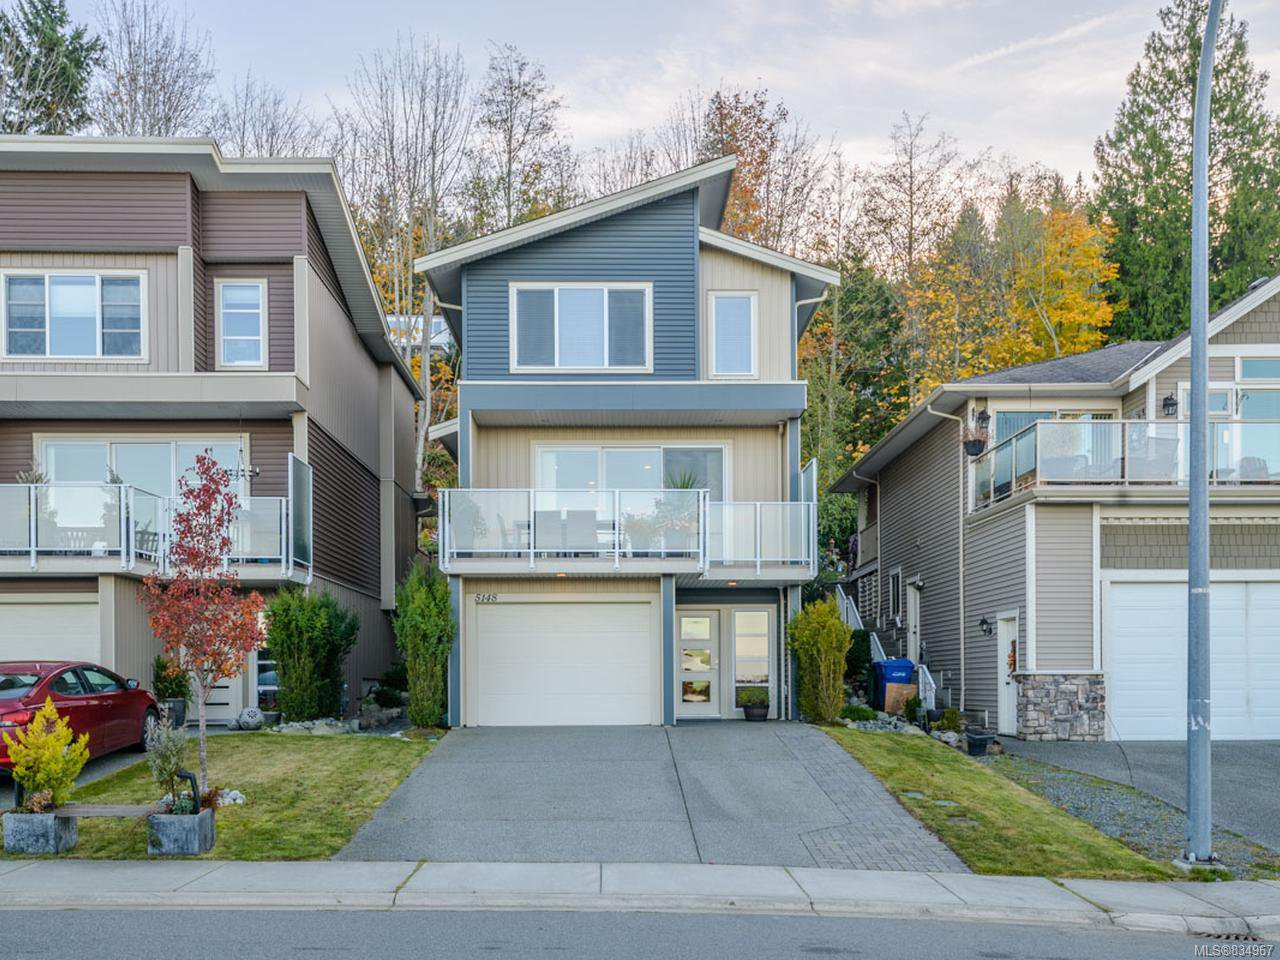 Main Photo: 5148 Dunn Pl in NANAIMO: Na North Nanaimo House for sale (Nanaimo)  : MLS®# 834967